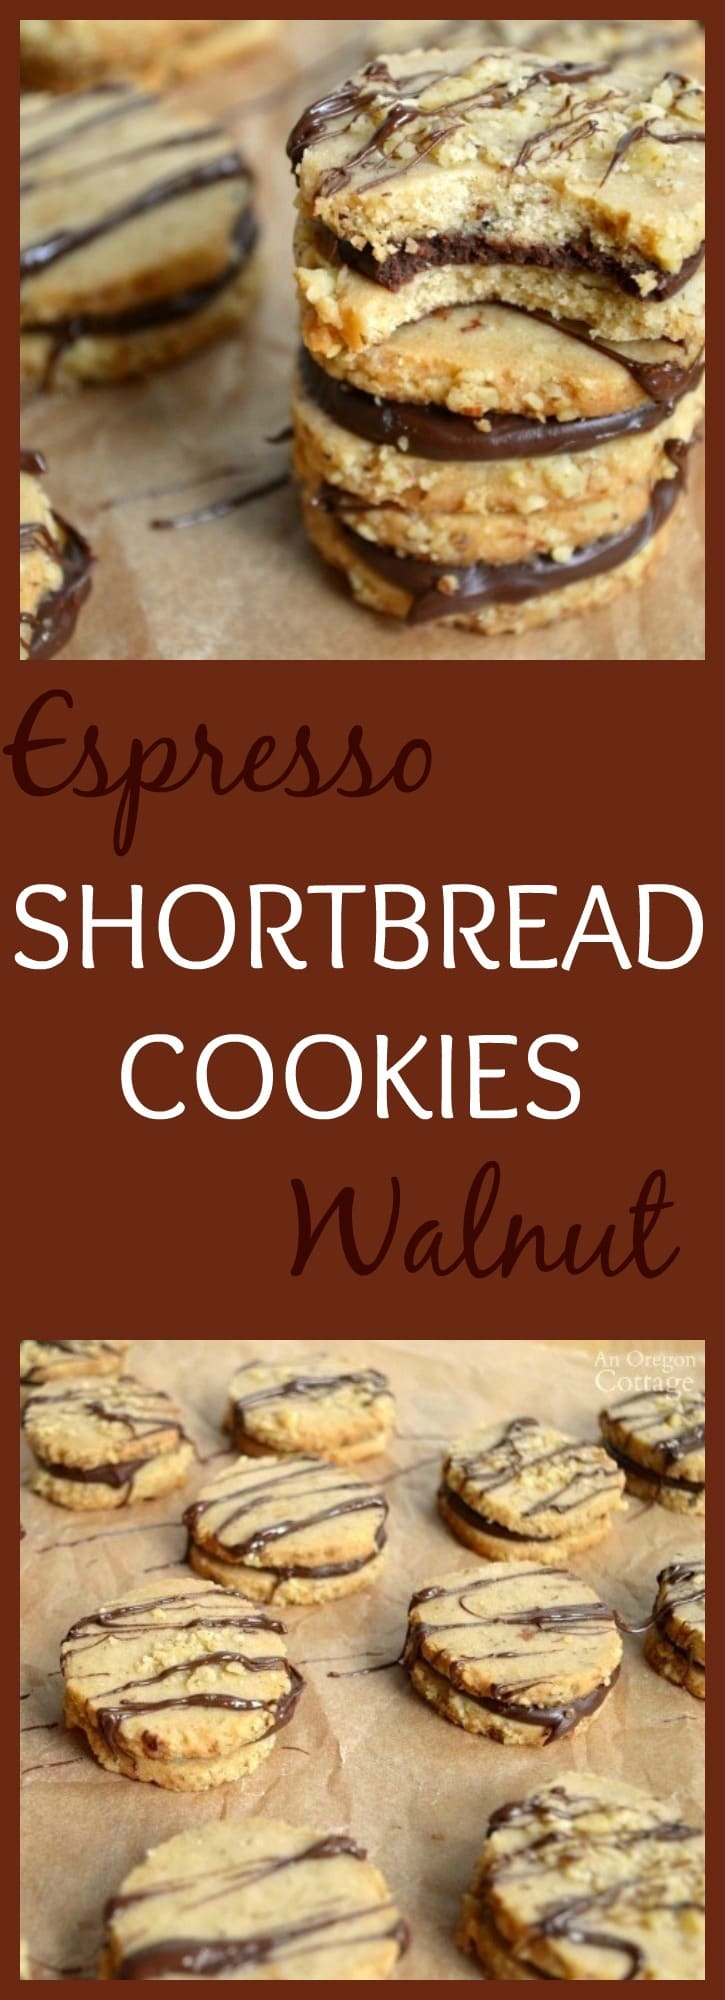 A delicious grown-up Shortbread Cookie that is full of espresso and walnuts and smothered in a chocolate ganache!